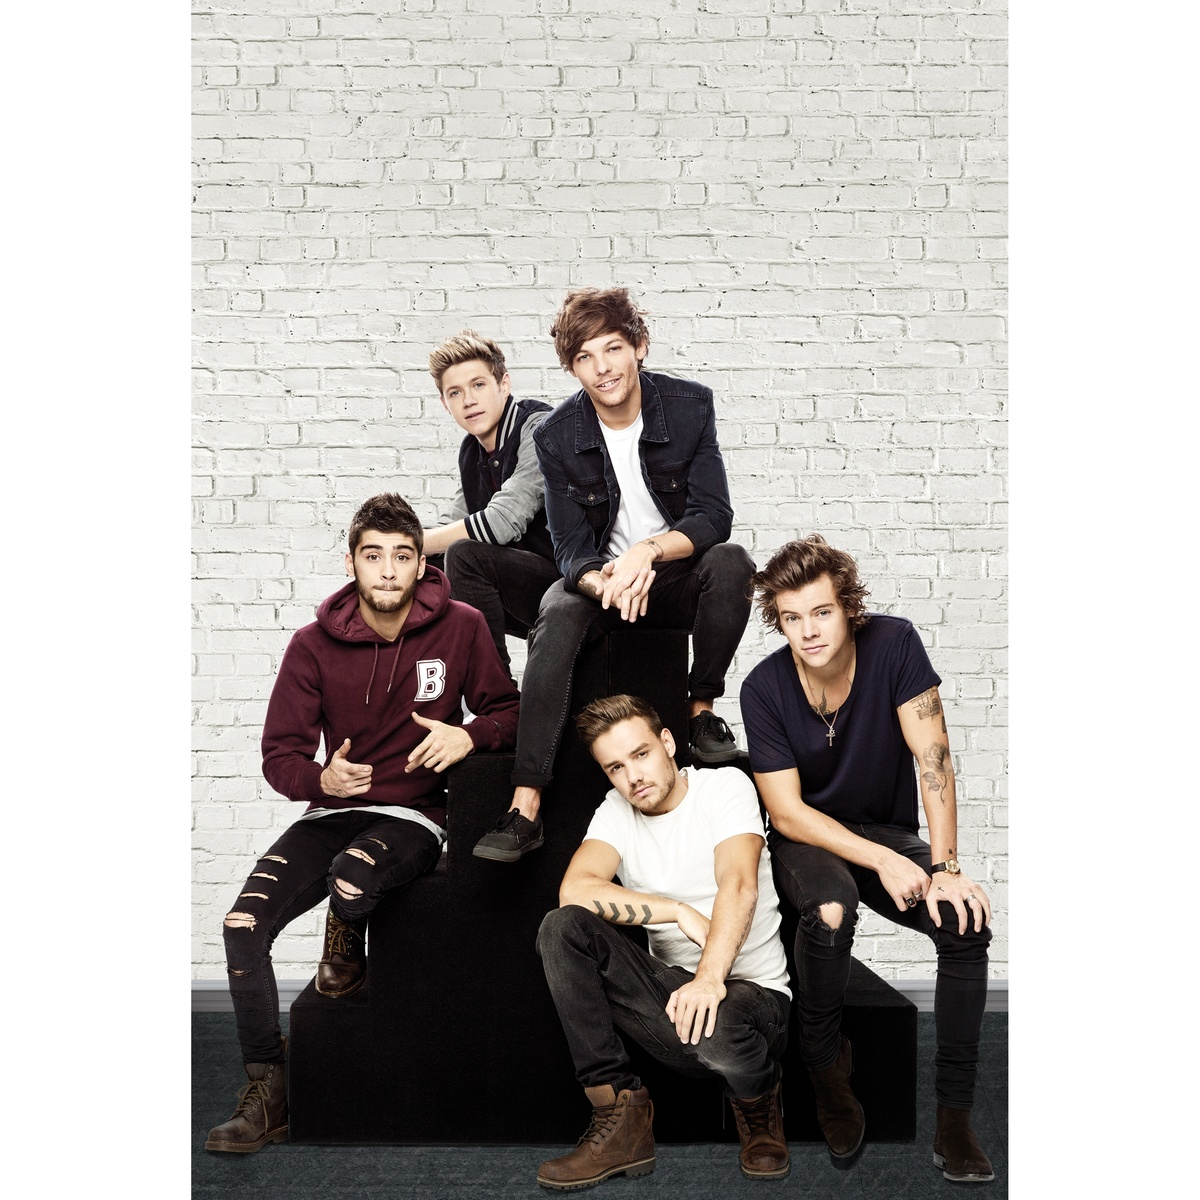 Fototapeta One Direction 3, 158 x 232 cm